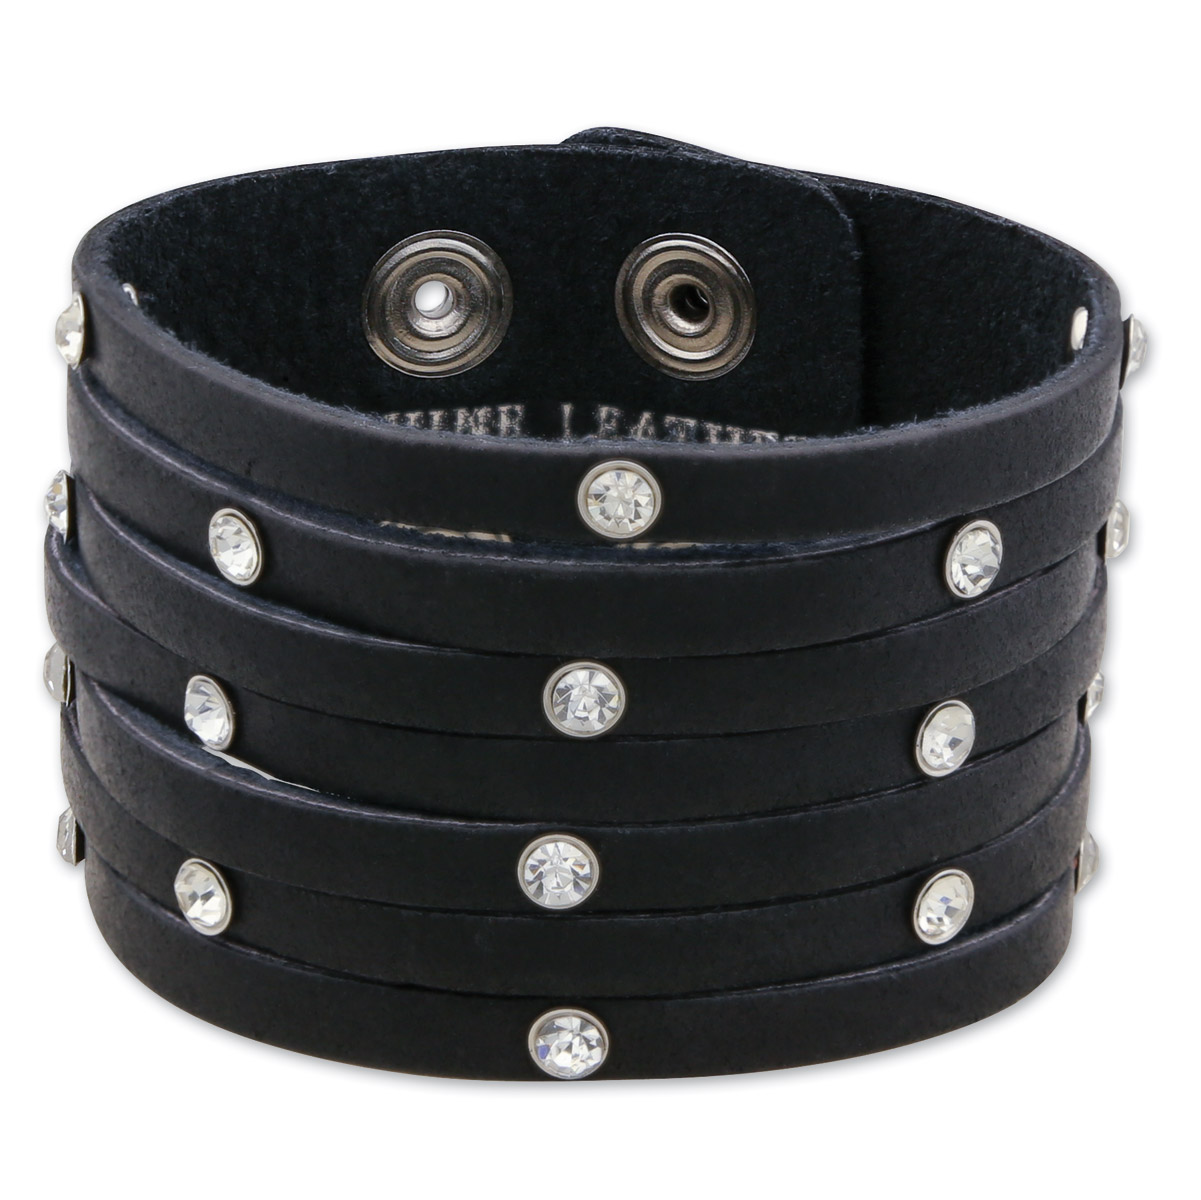 That's A Wrap Strappy Rhinestone Leather Cuff Wristband